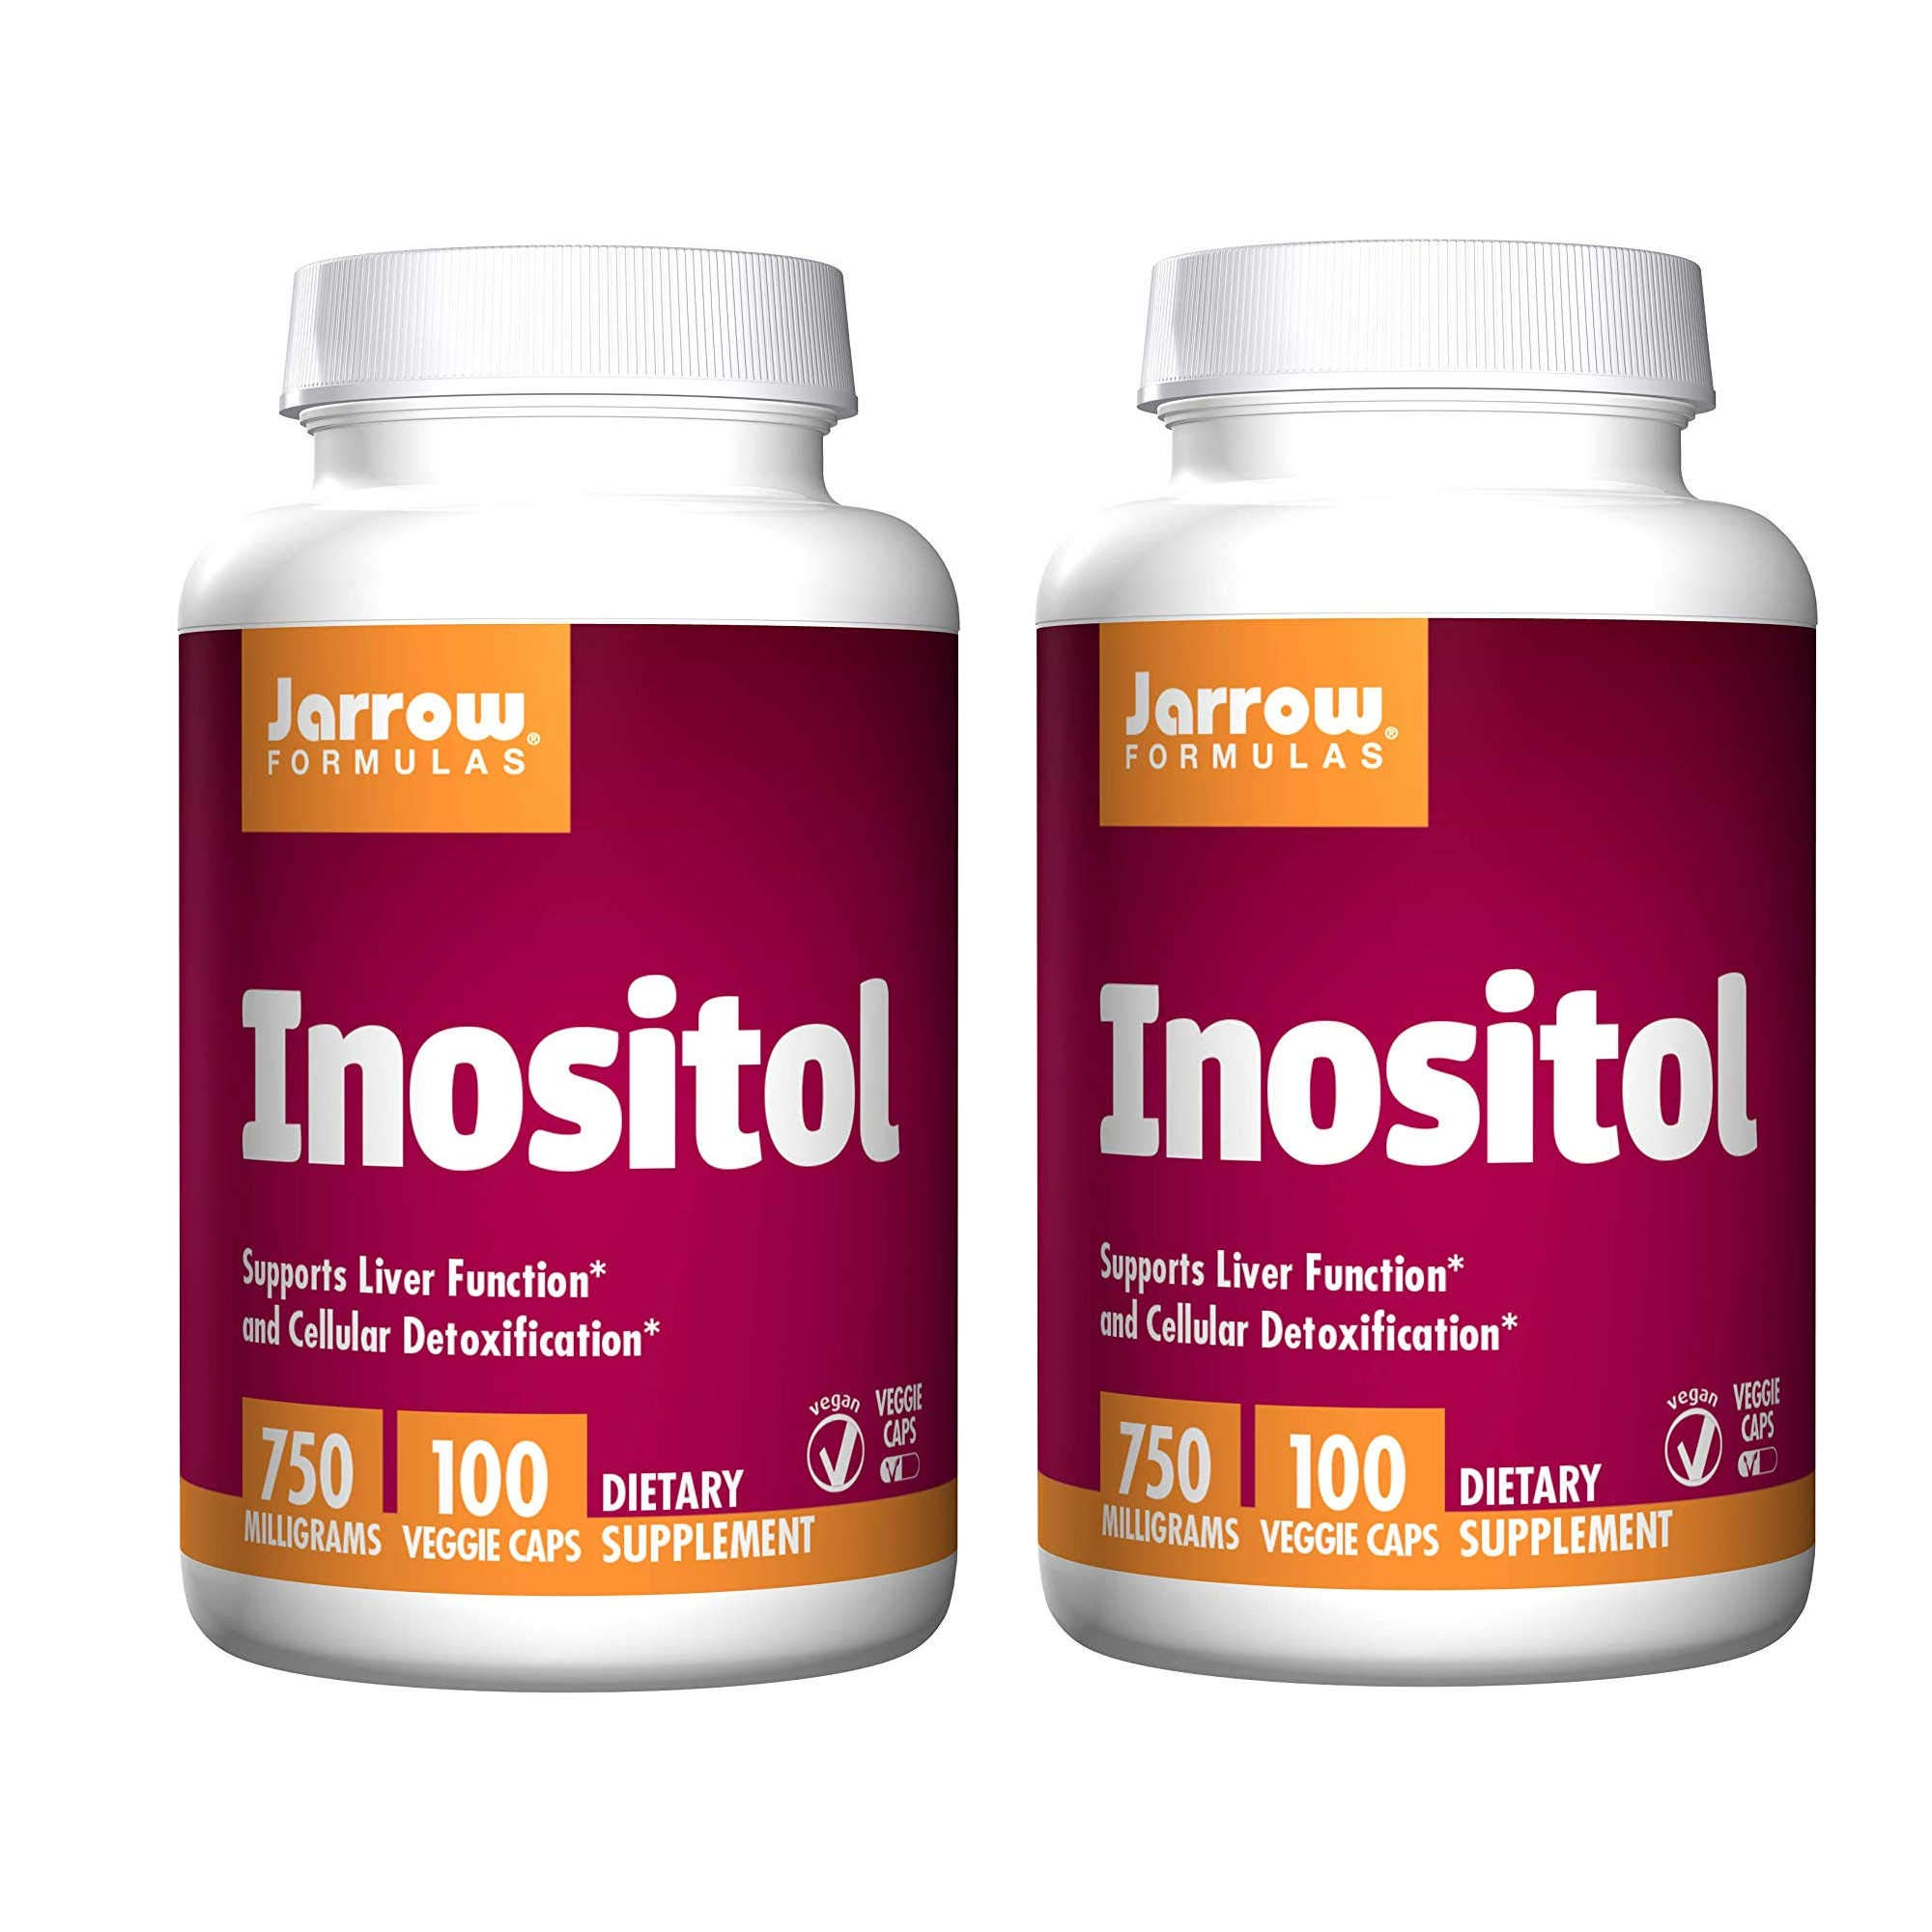 Jarrow Formulas Inositol Supports Liver Function and Cellular Detoxification 750 Milligrams Dietary Supplement - 100 Veggie Caps (Pack of 2)